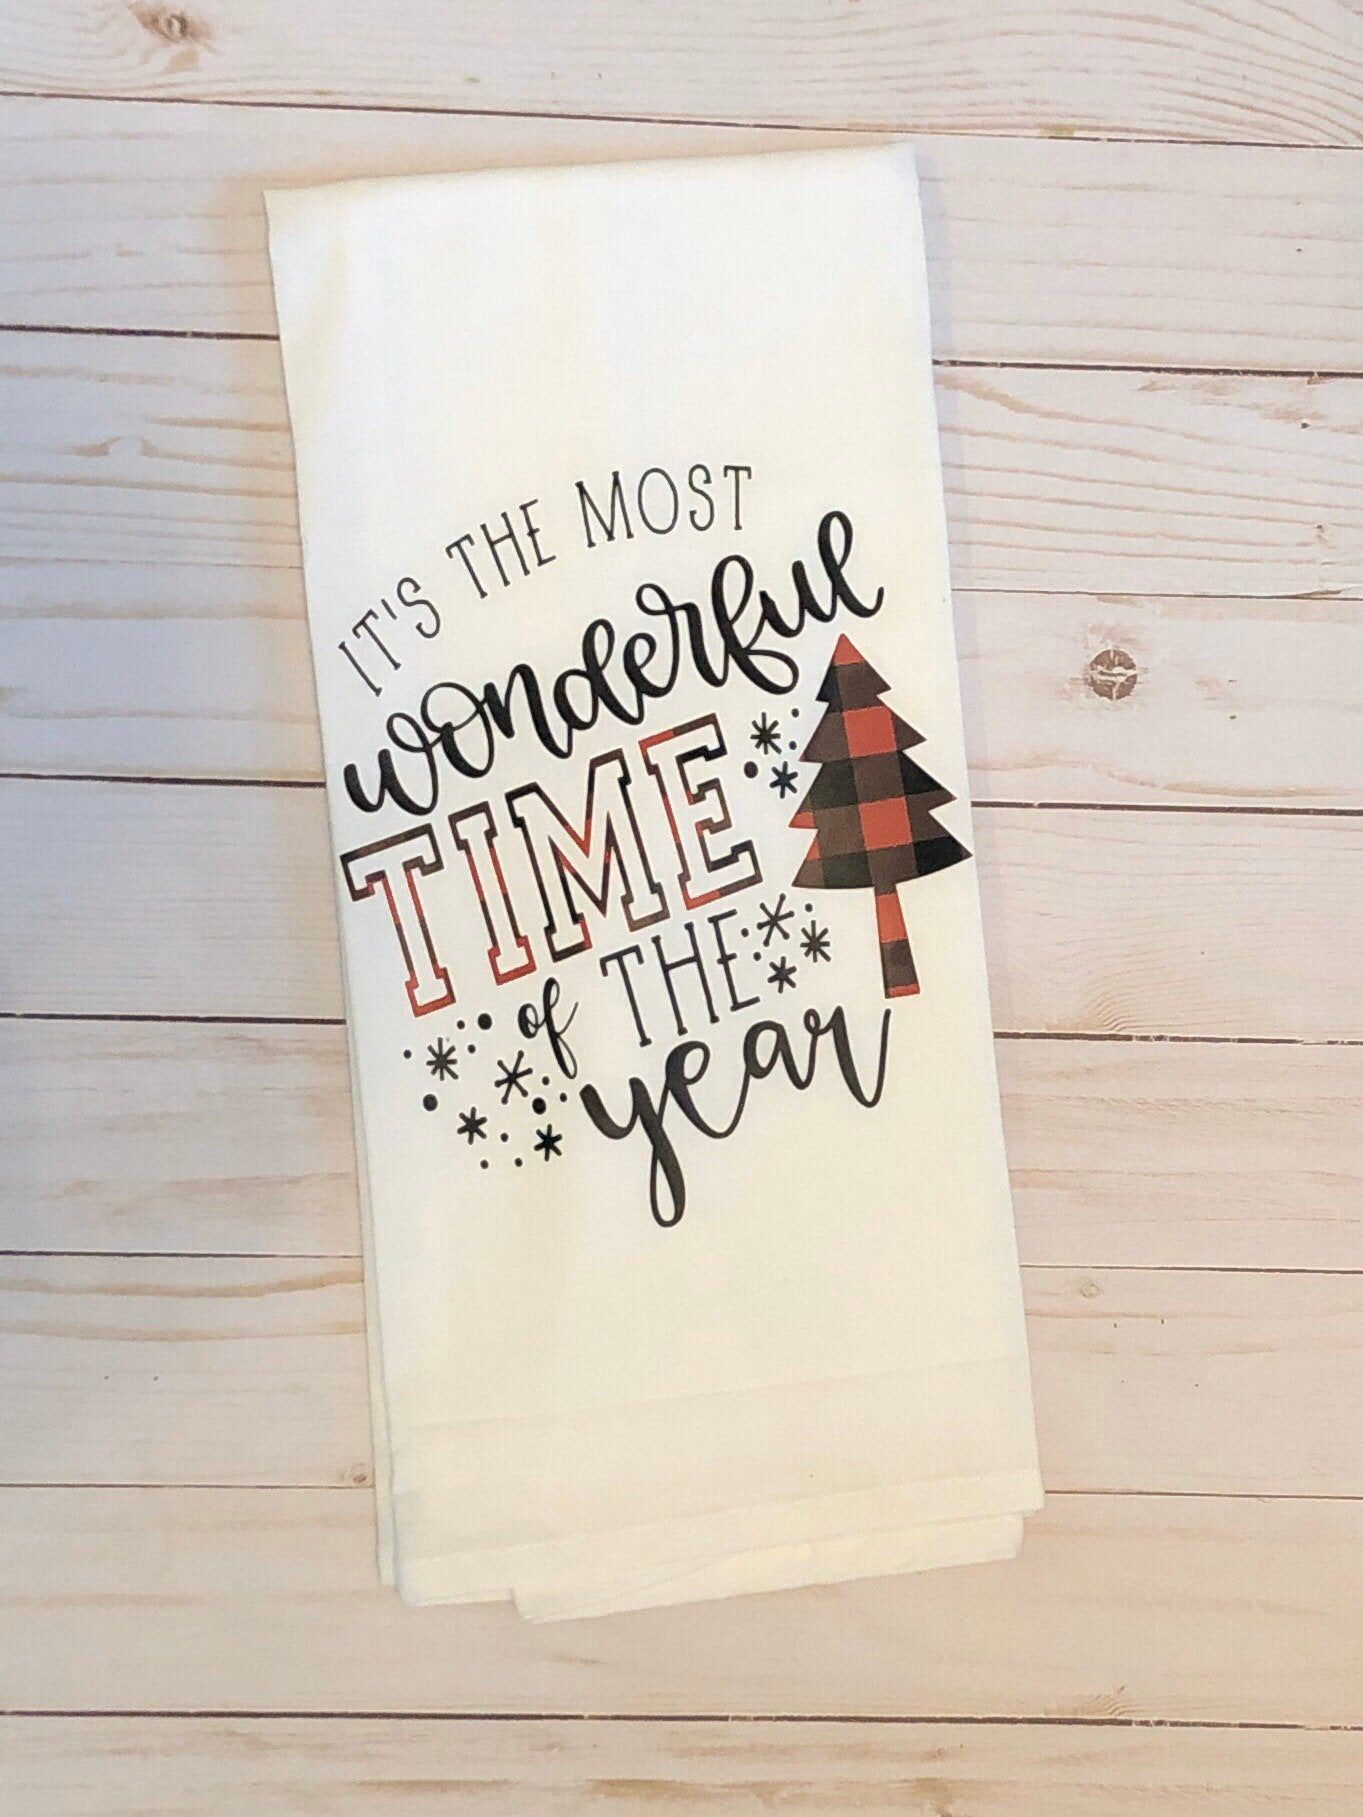 Excited to share this item from my shop Holiday Season Tea Towel